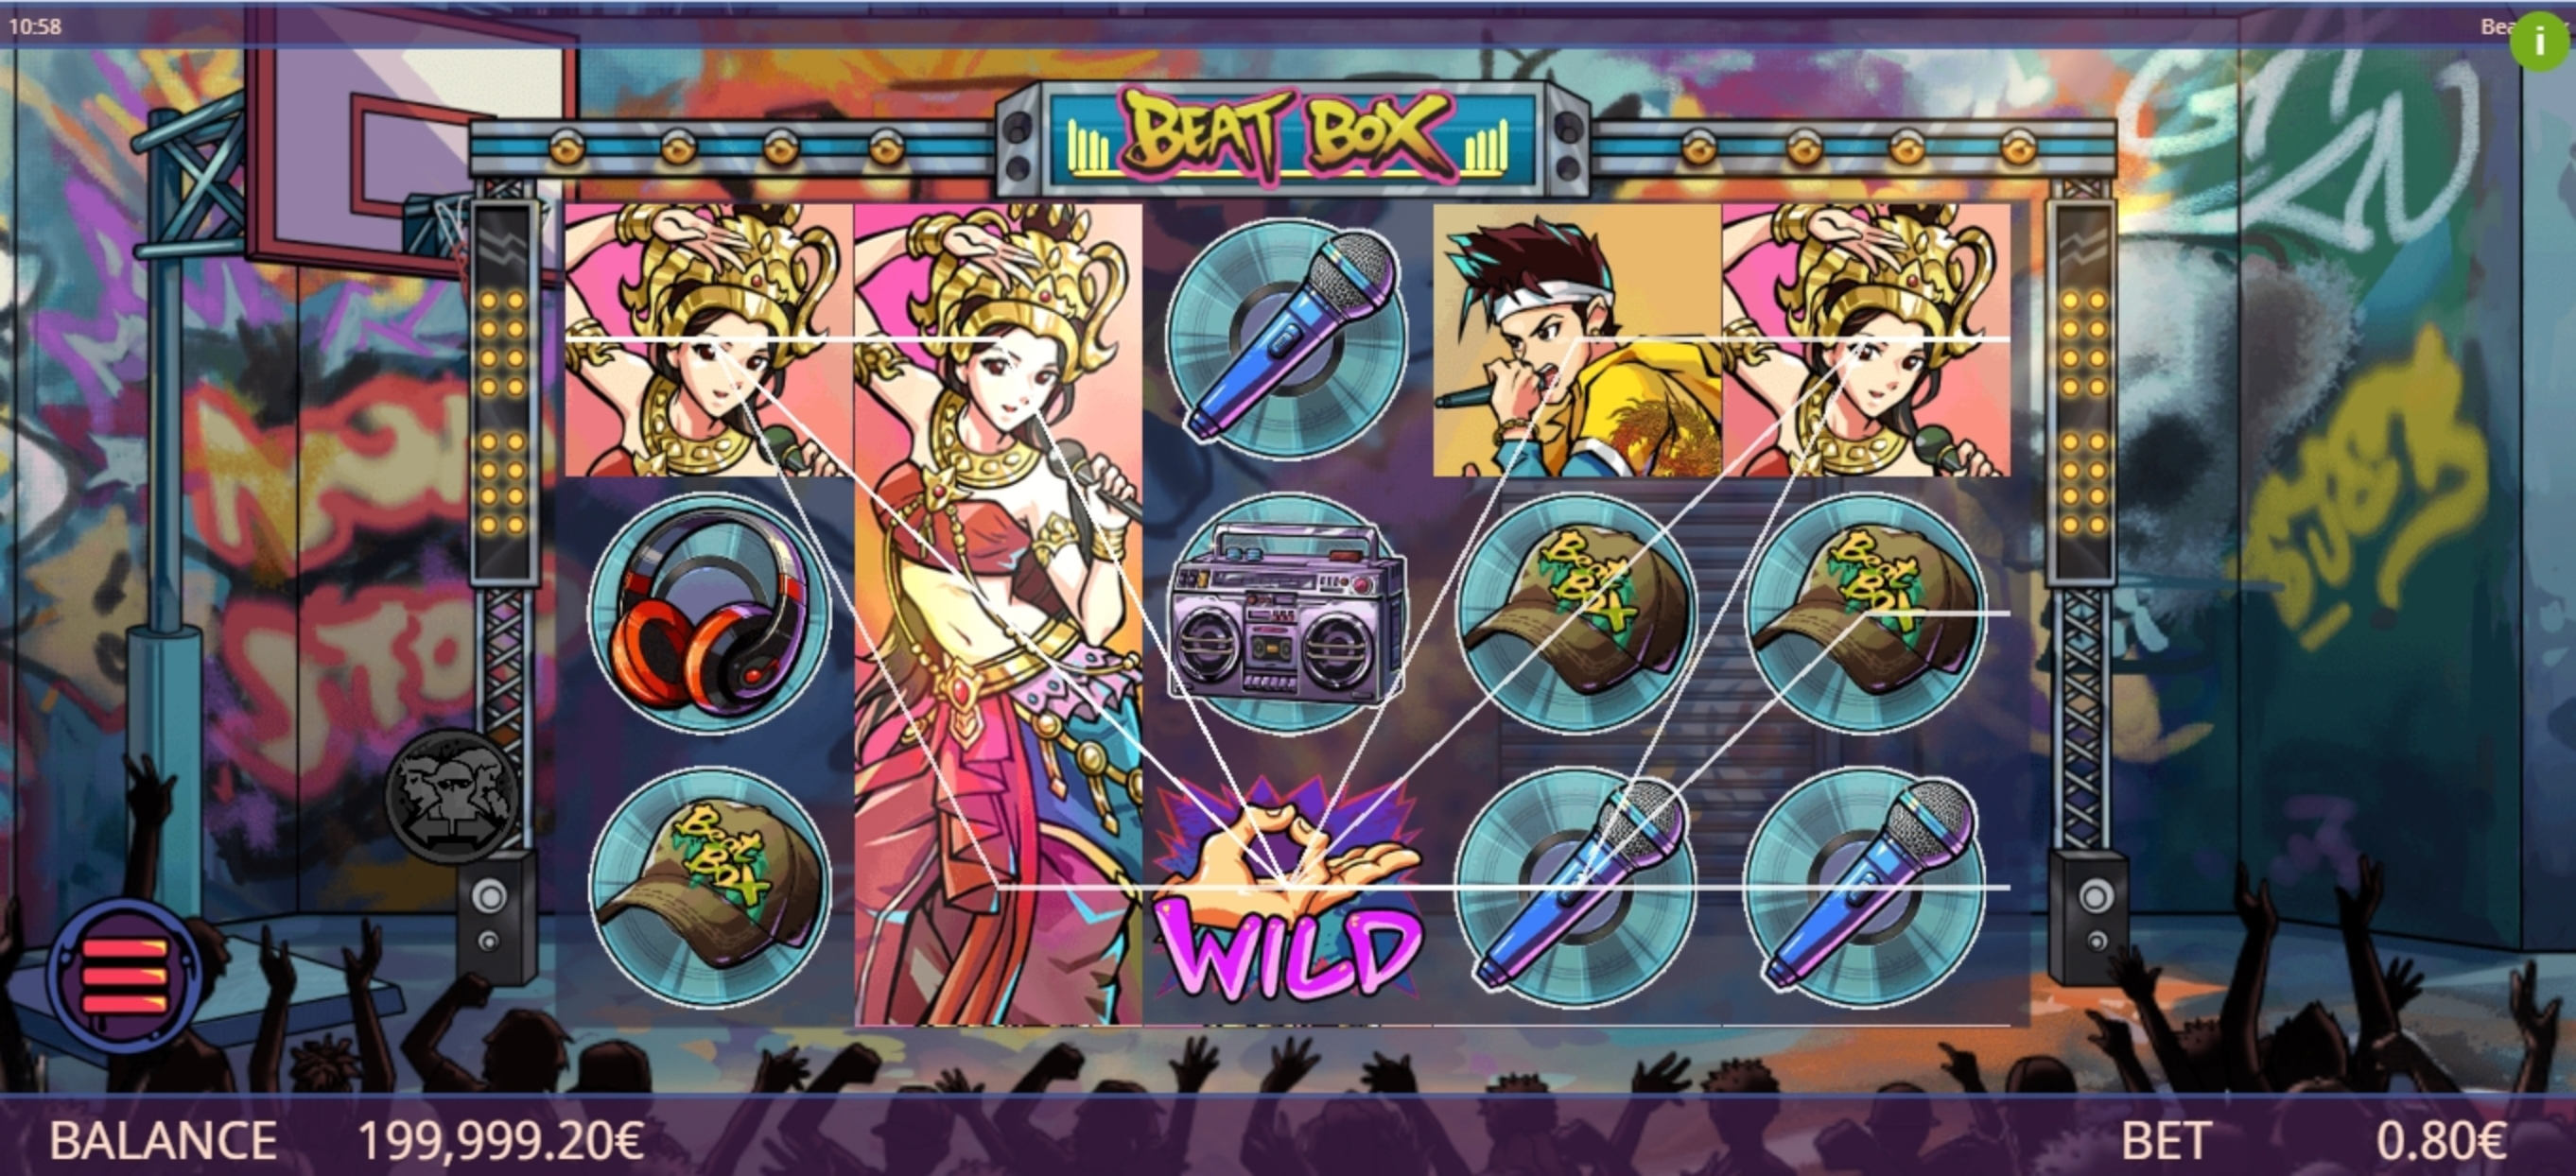 Win Money in Beat Box Free Slot Game by Gamatron